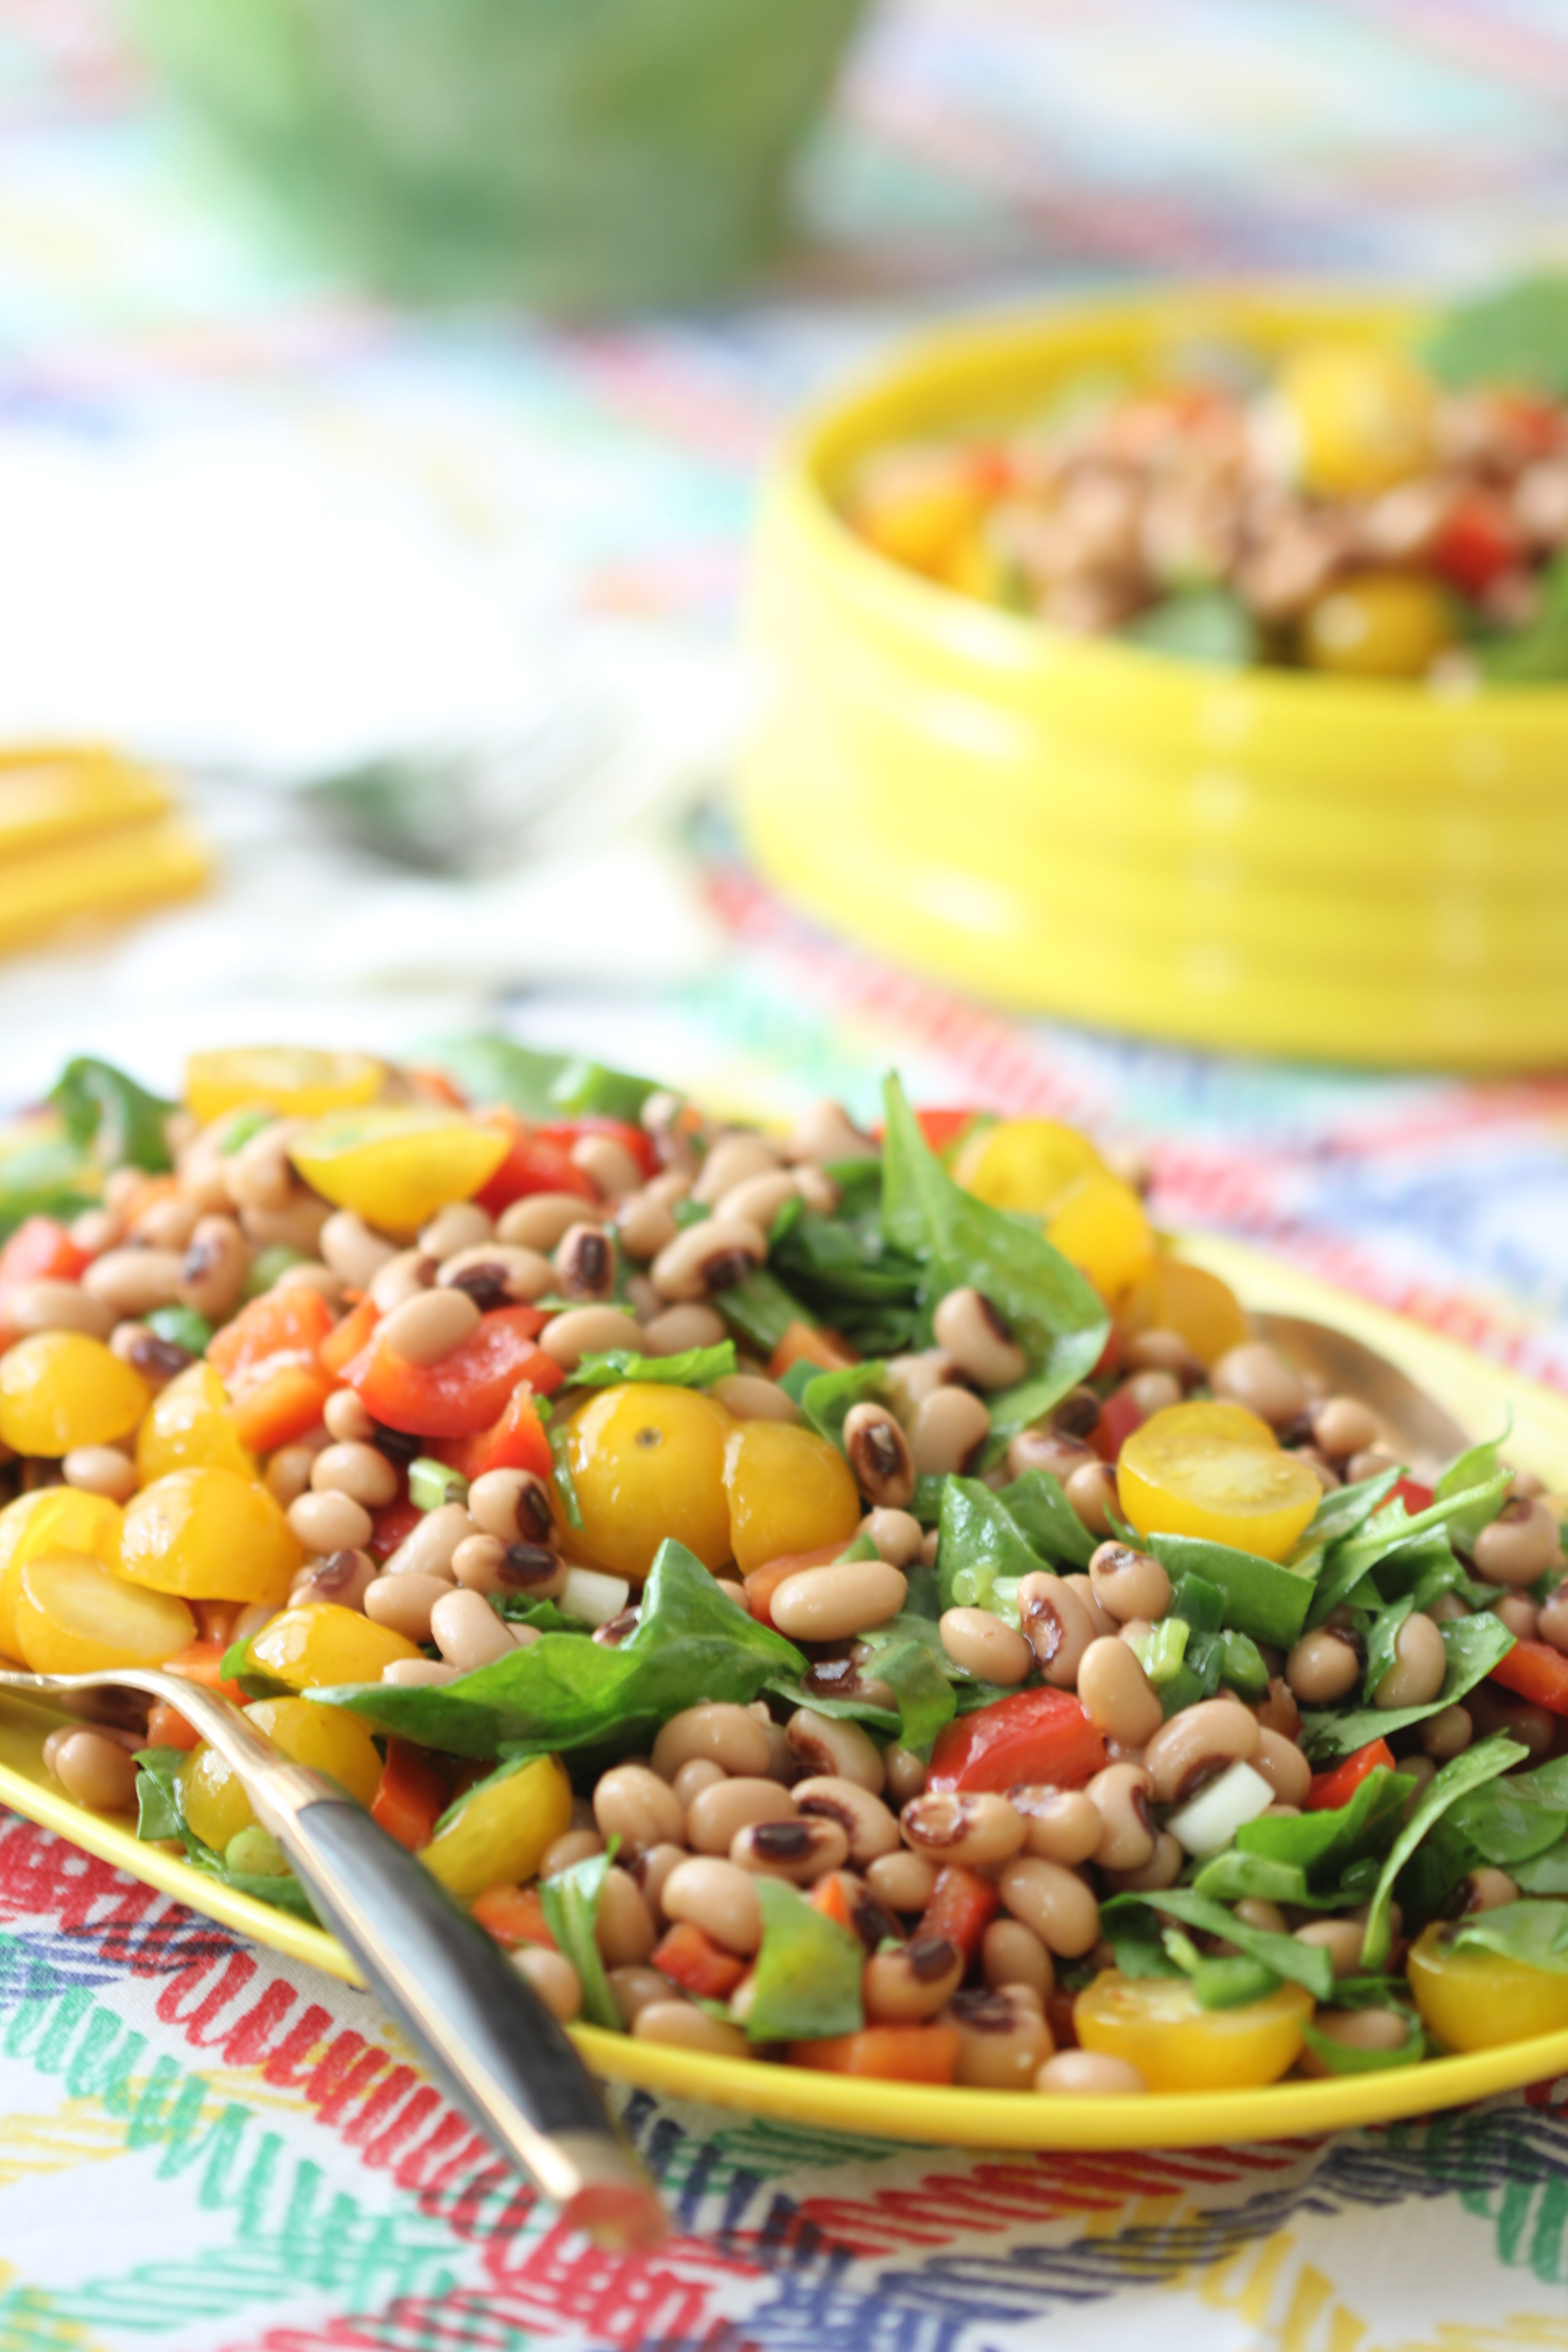 Ridgely Brode cooks up and shares the recipe for a delicious make ahead Black-Eyed Peas Salad on her blog, Ridgely's Radar.